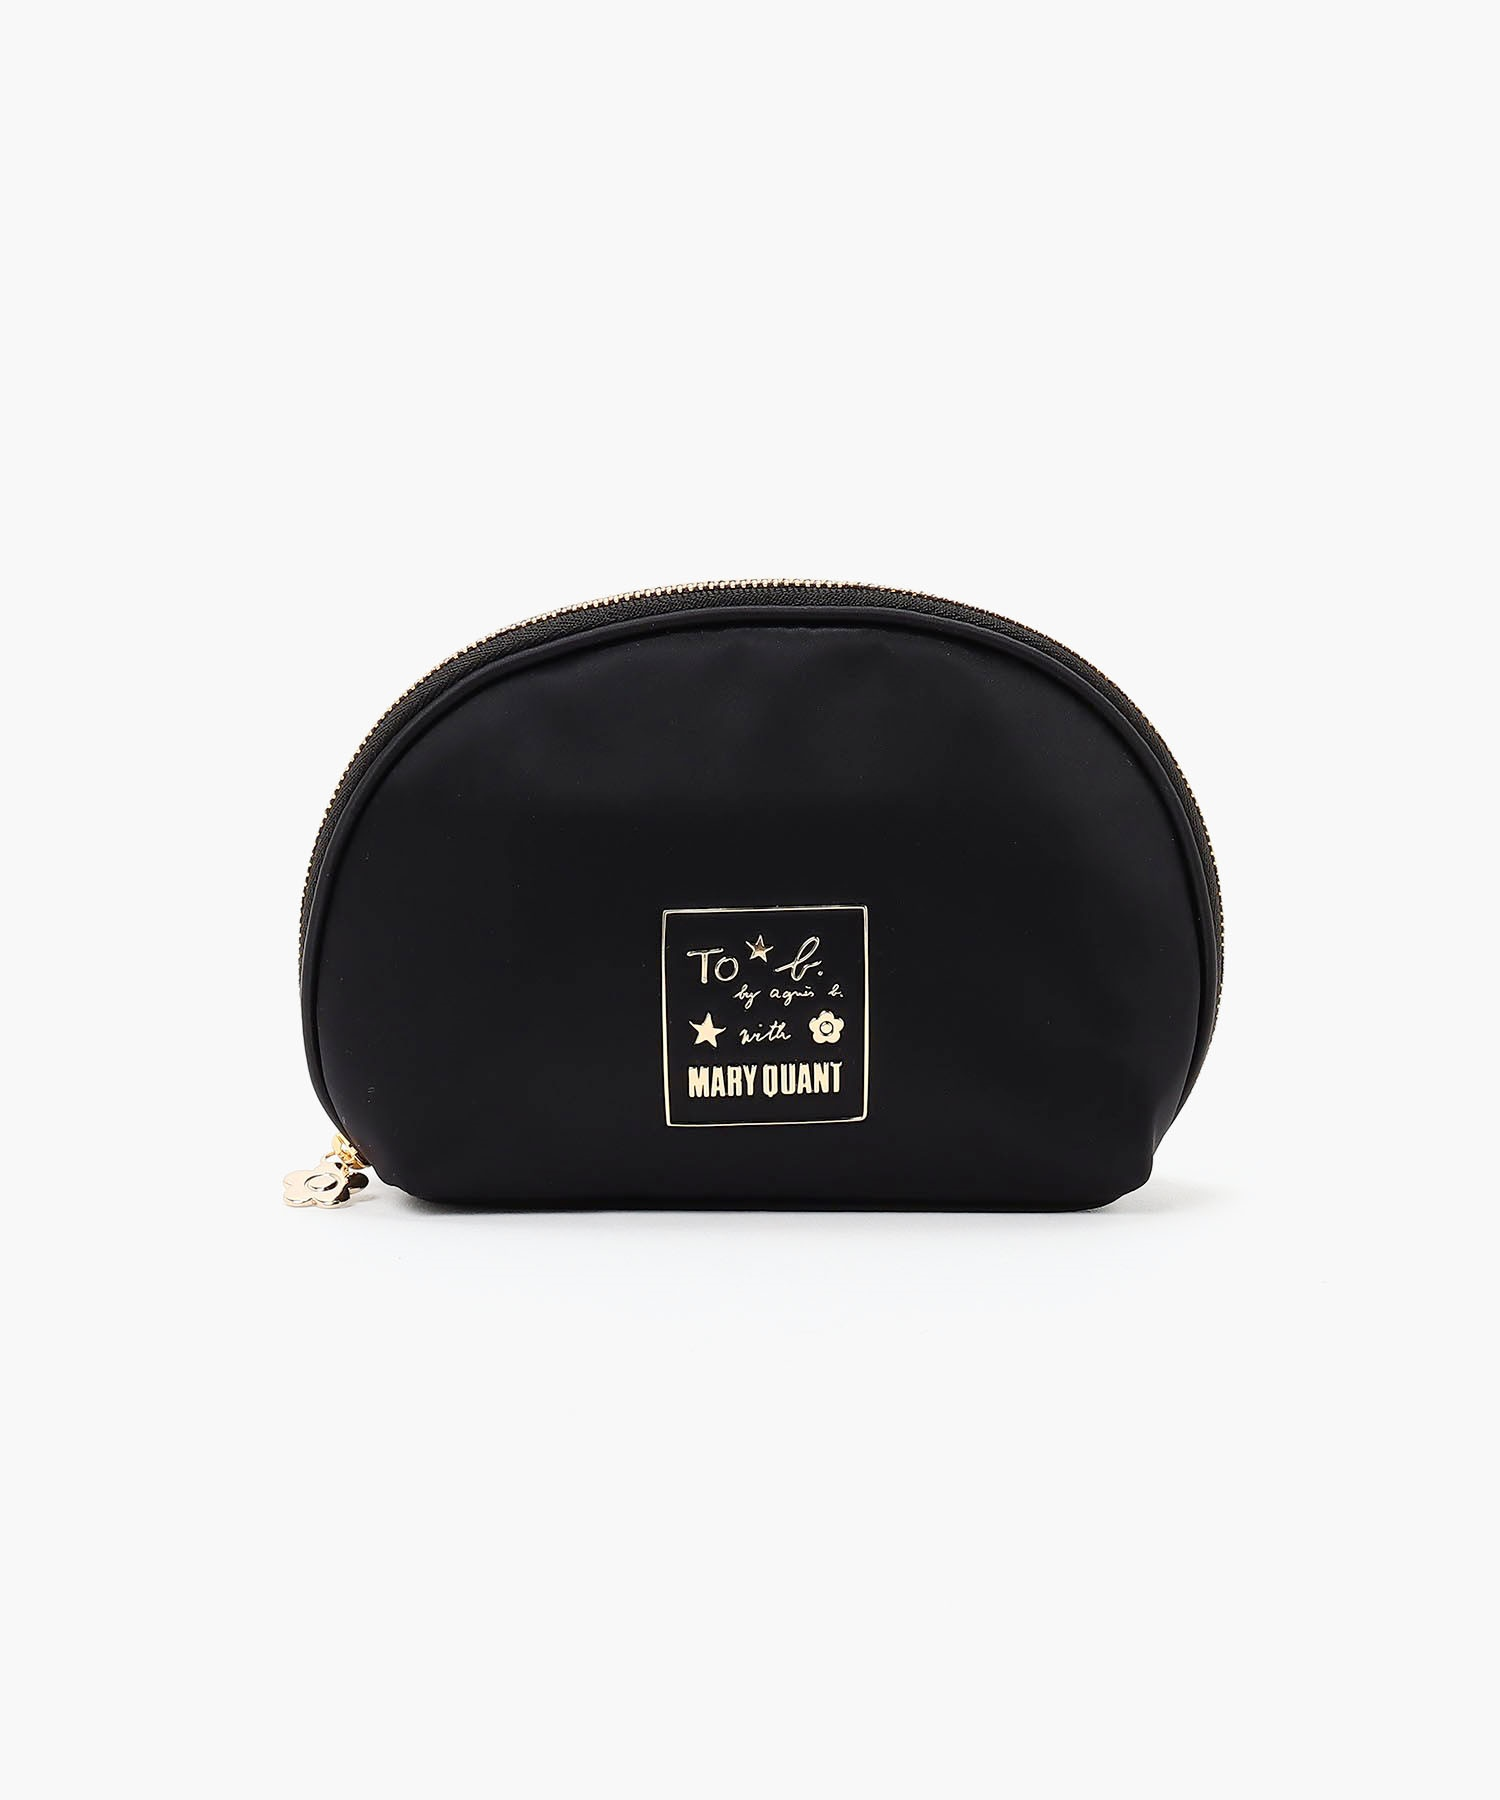 WS27 POUCH MARY QUANTコラボ ジップポーチ